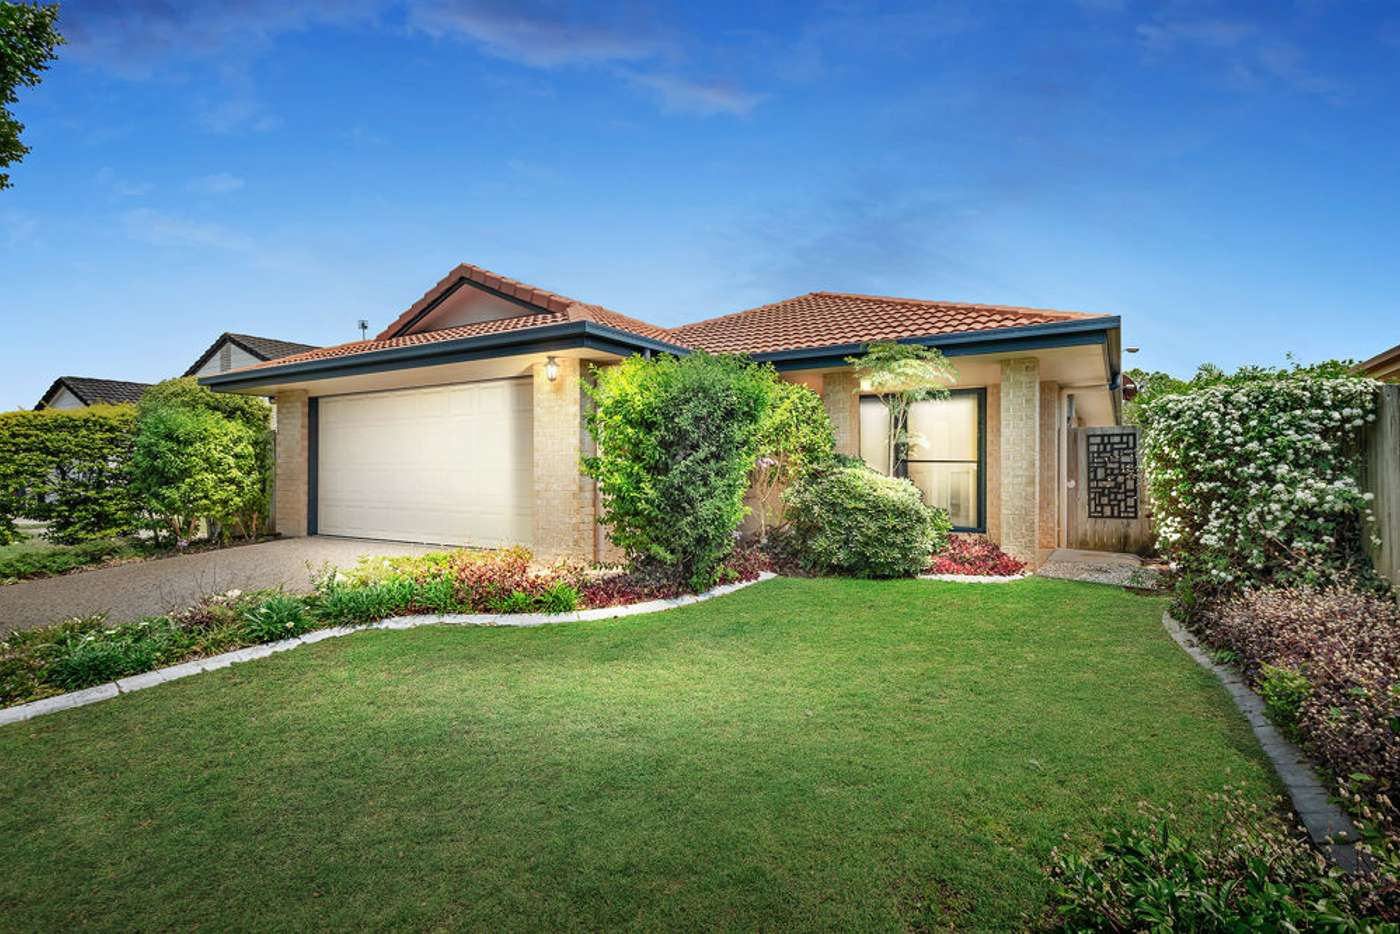 Main view of Homely house listing, 3 Galway Street, Caloundra West QLD 4551